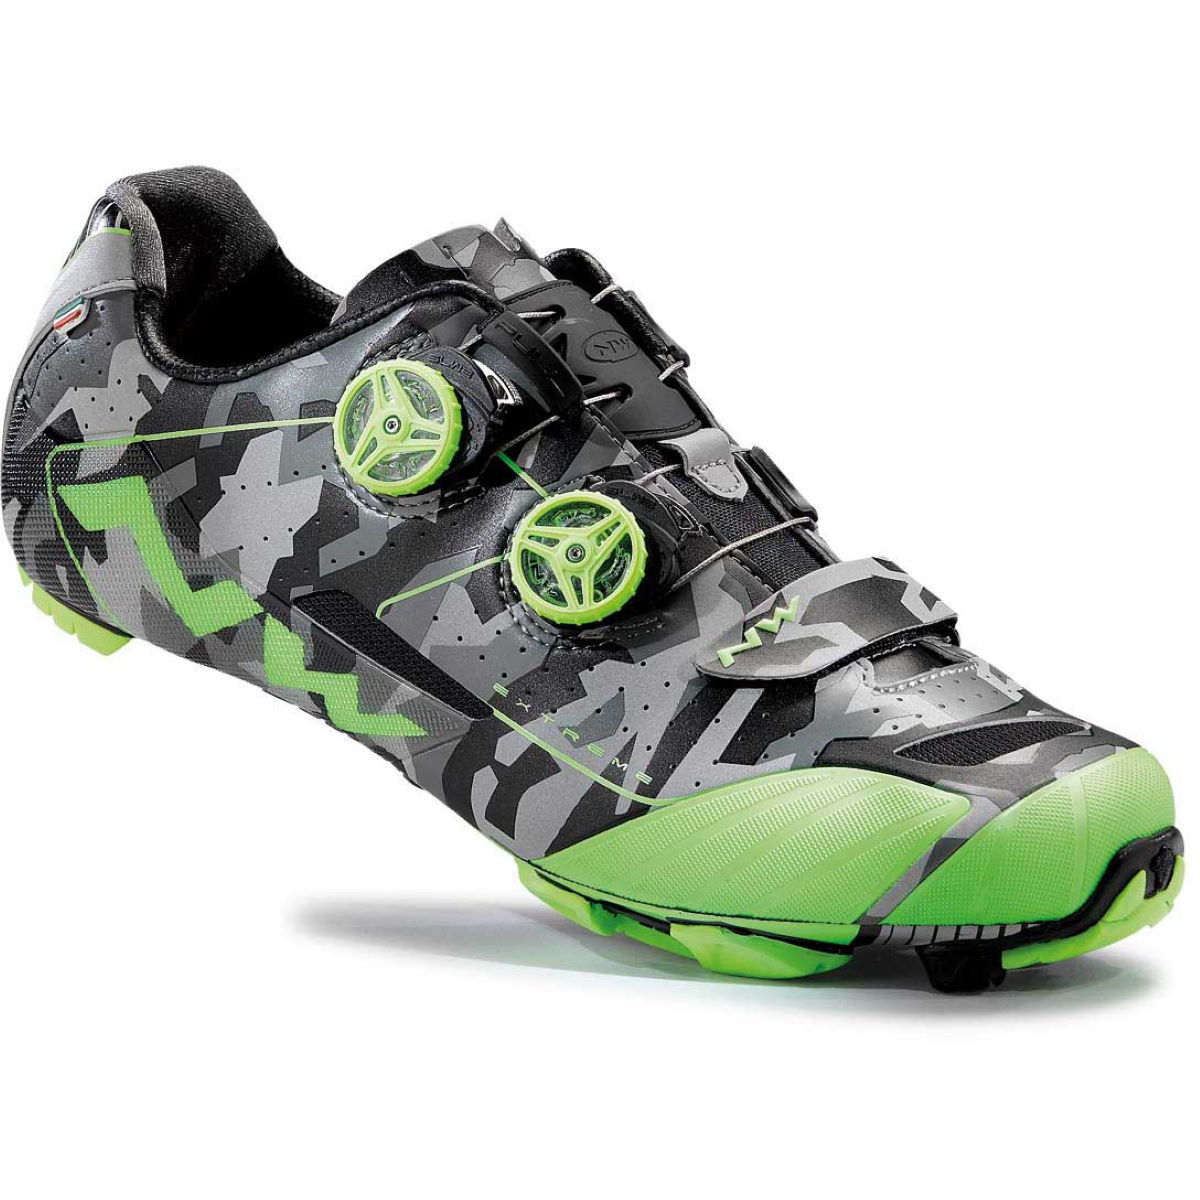 Chaussures VTT Northwave Extreme XC - 48 Reflective Camo/Gree